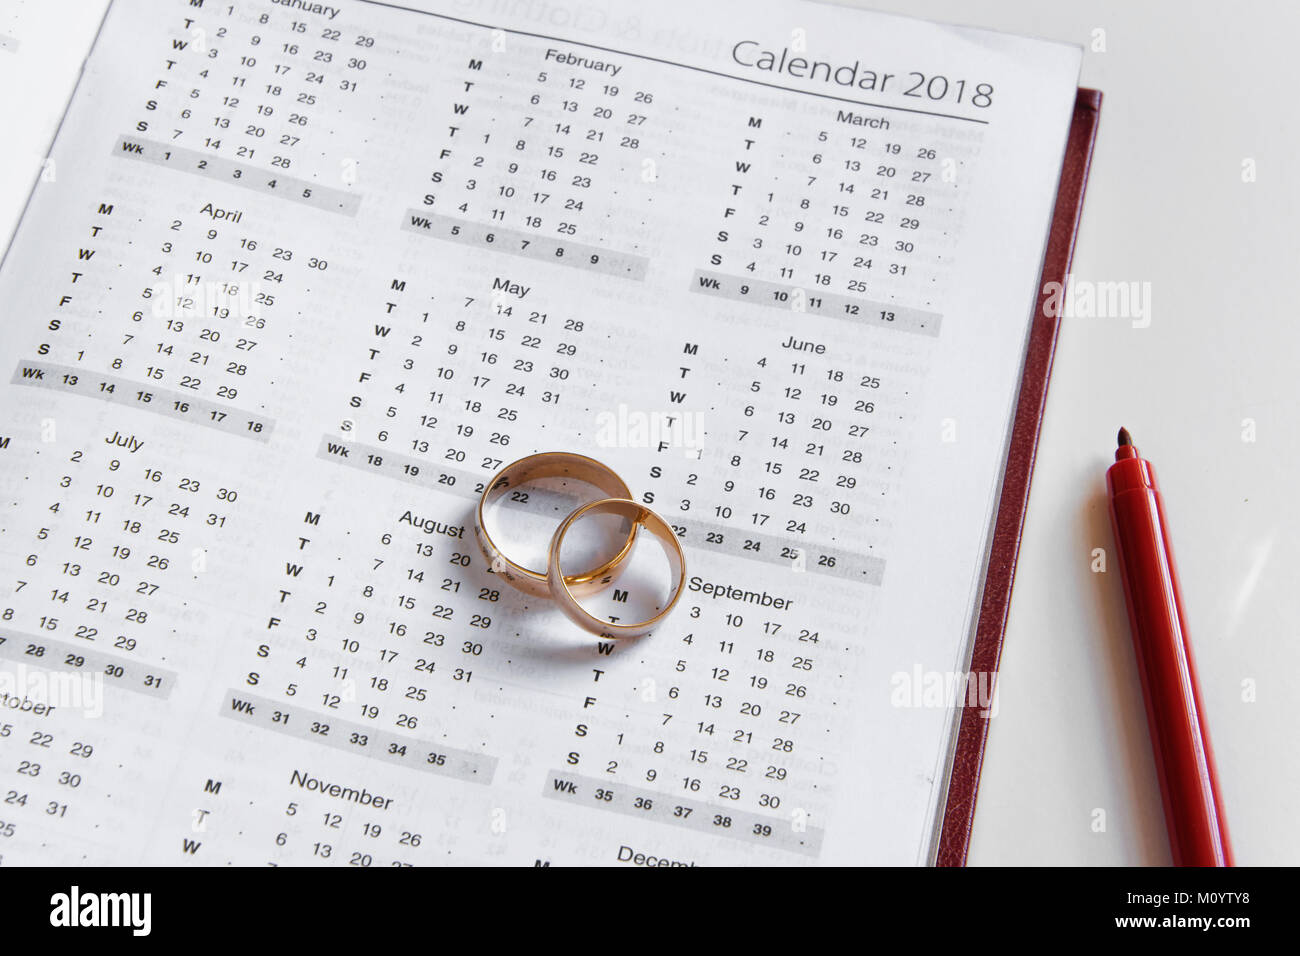 planning a wedding in 2018 calendar of 2018 two wedding rings and a pen on white background